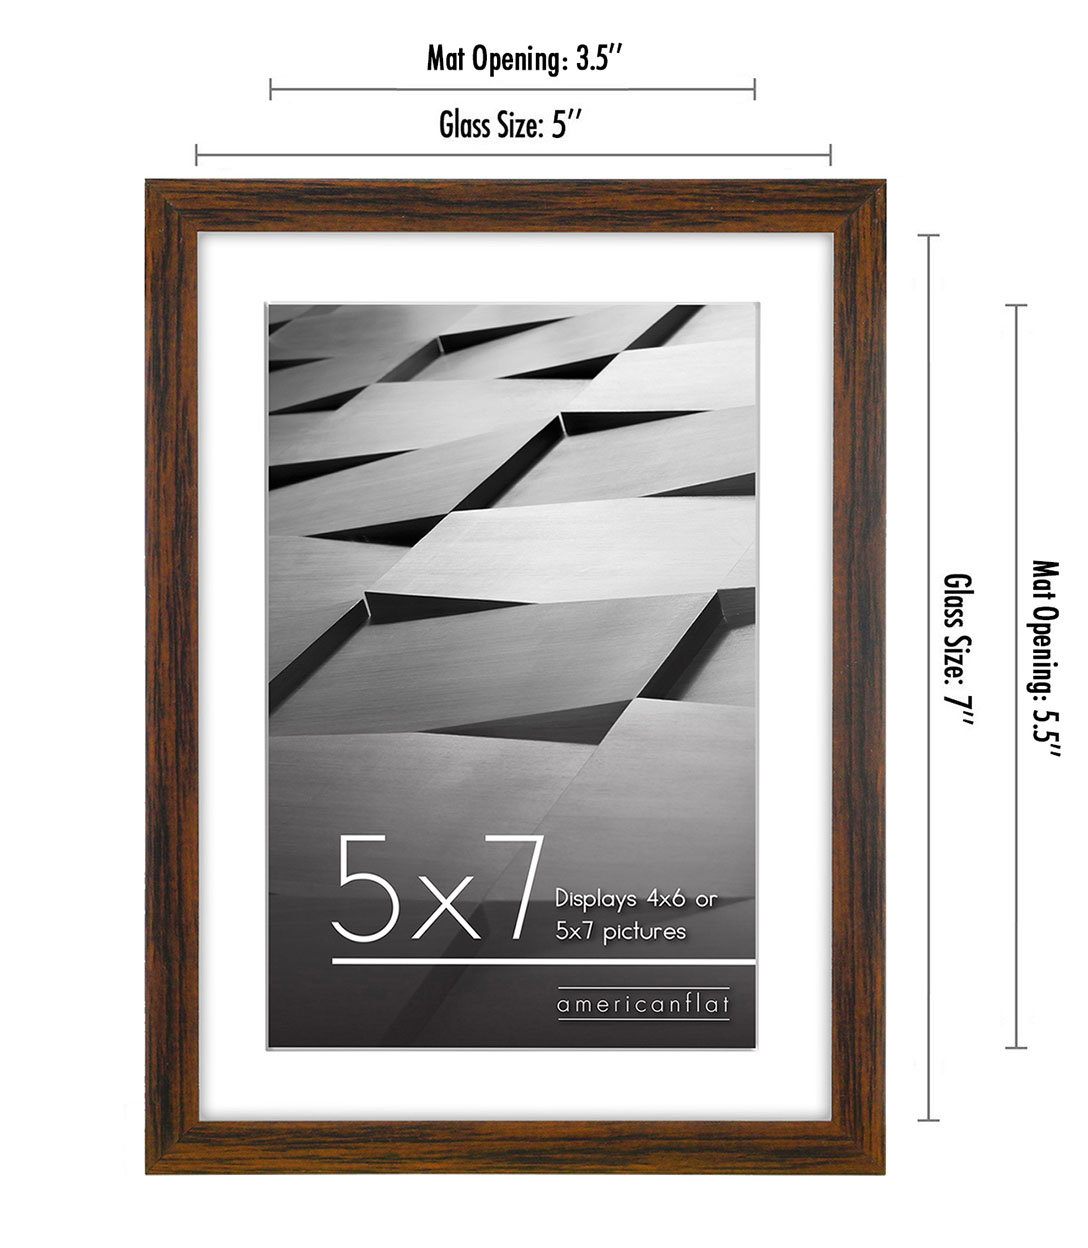 miniature 51 - Americanflat Thin Picture Frame 5x7 8x10 11x14 8.5x11 Wall Tabletop Pick Color